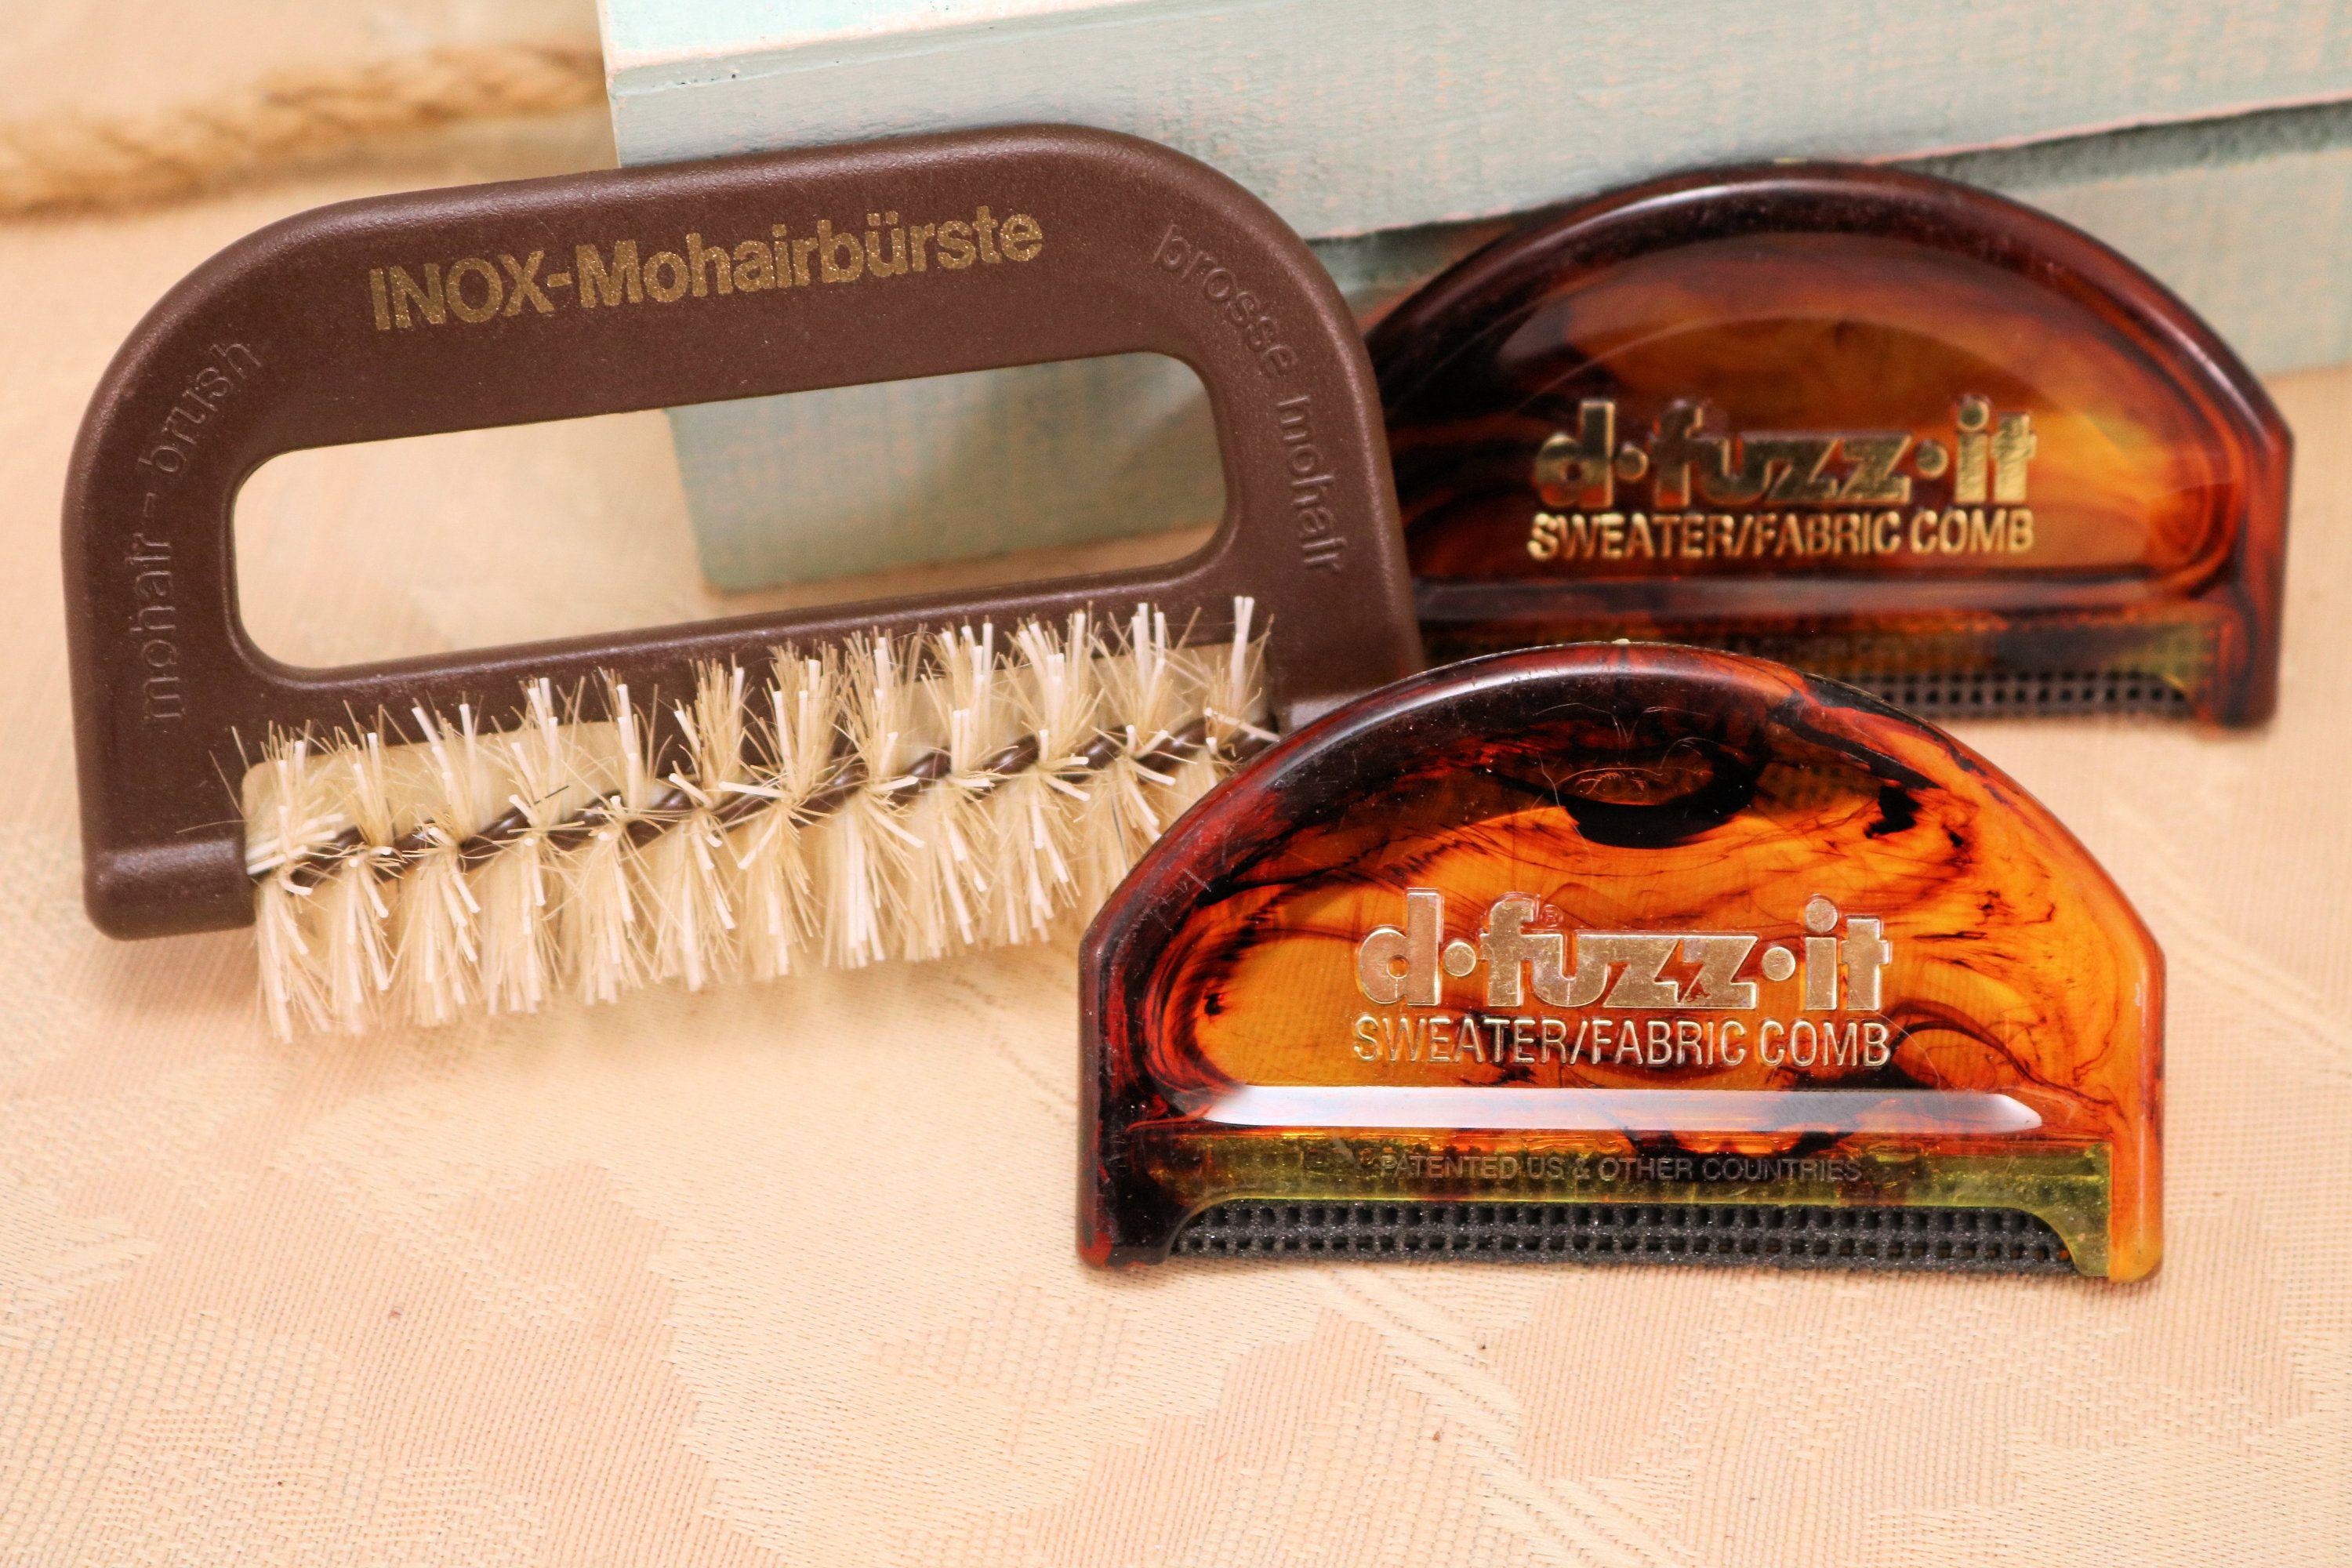 Collins D-Fuzz-It Fabric and Sweater Comb 1 Pack